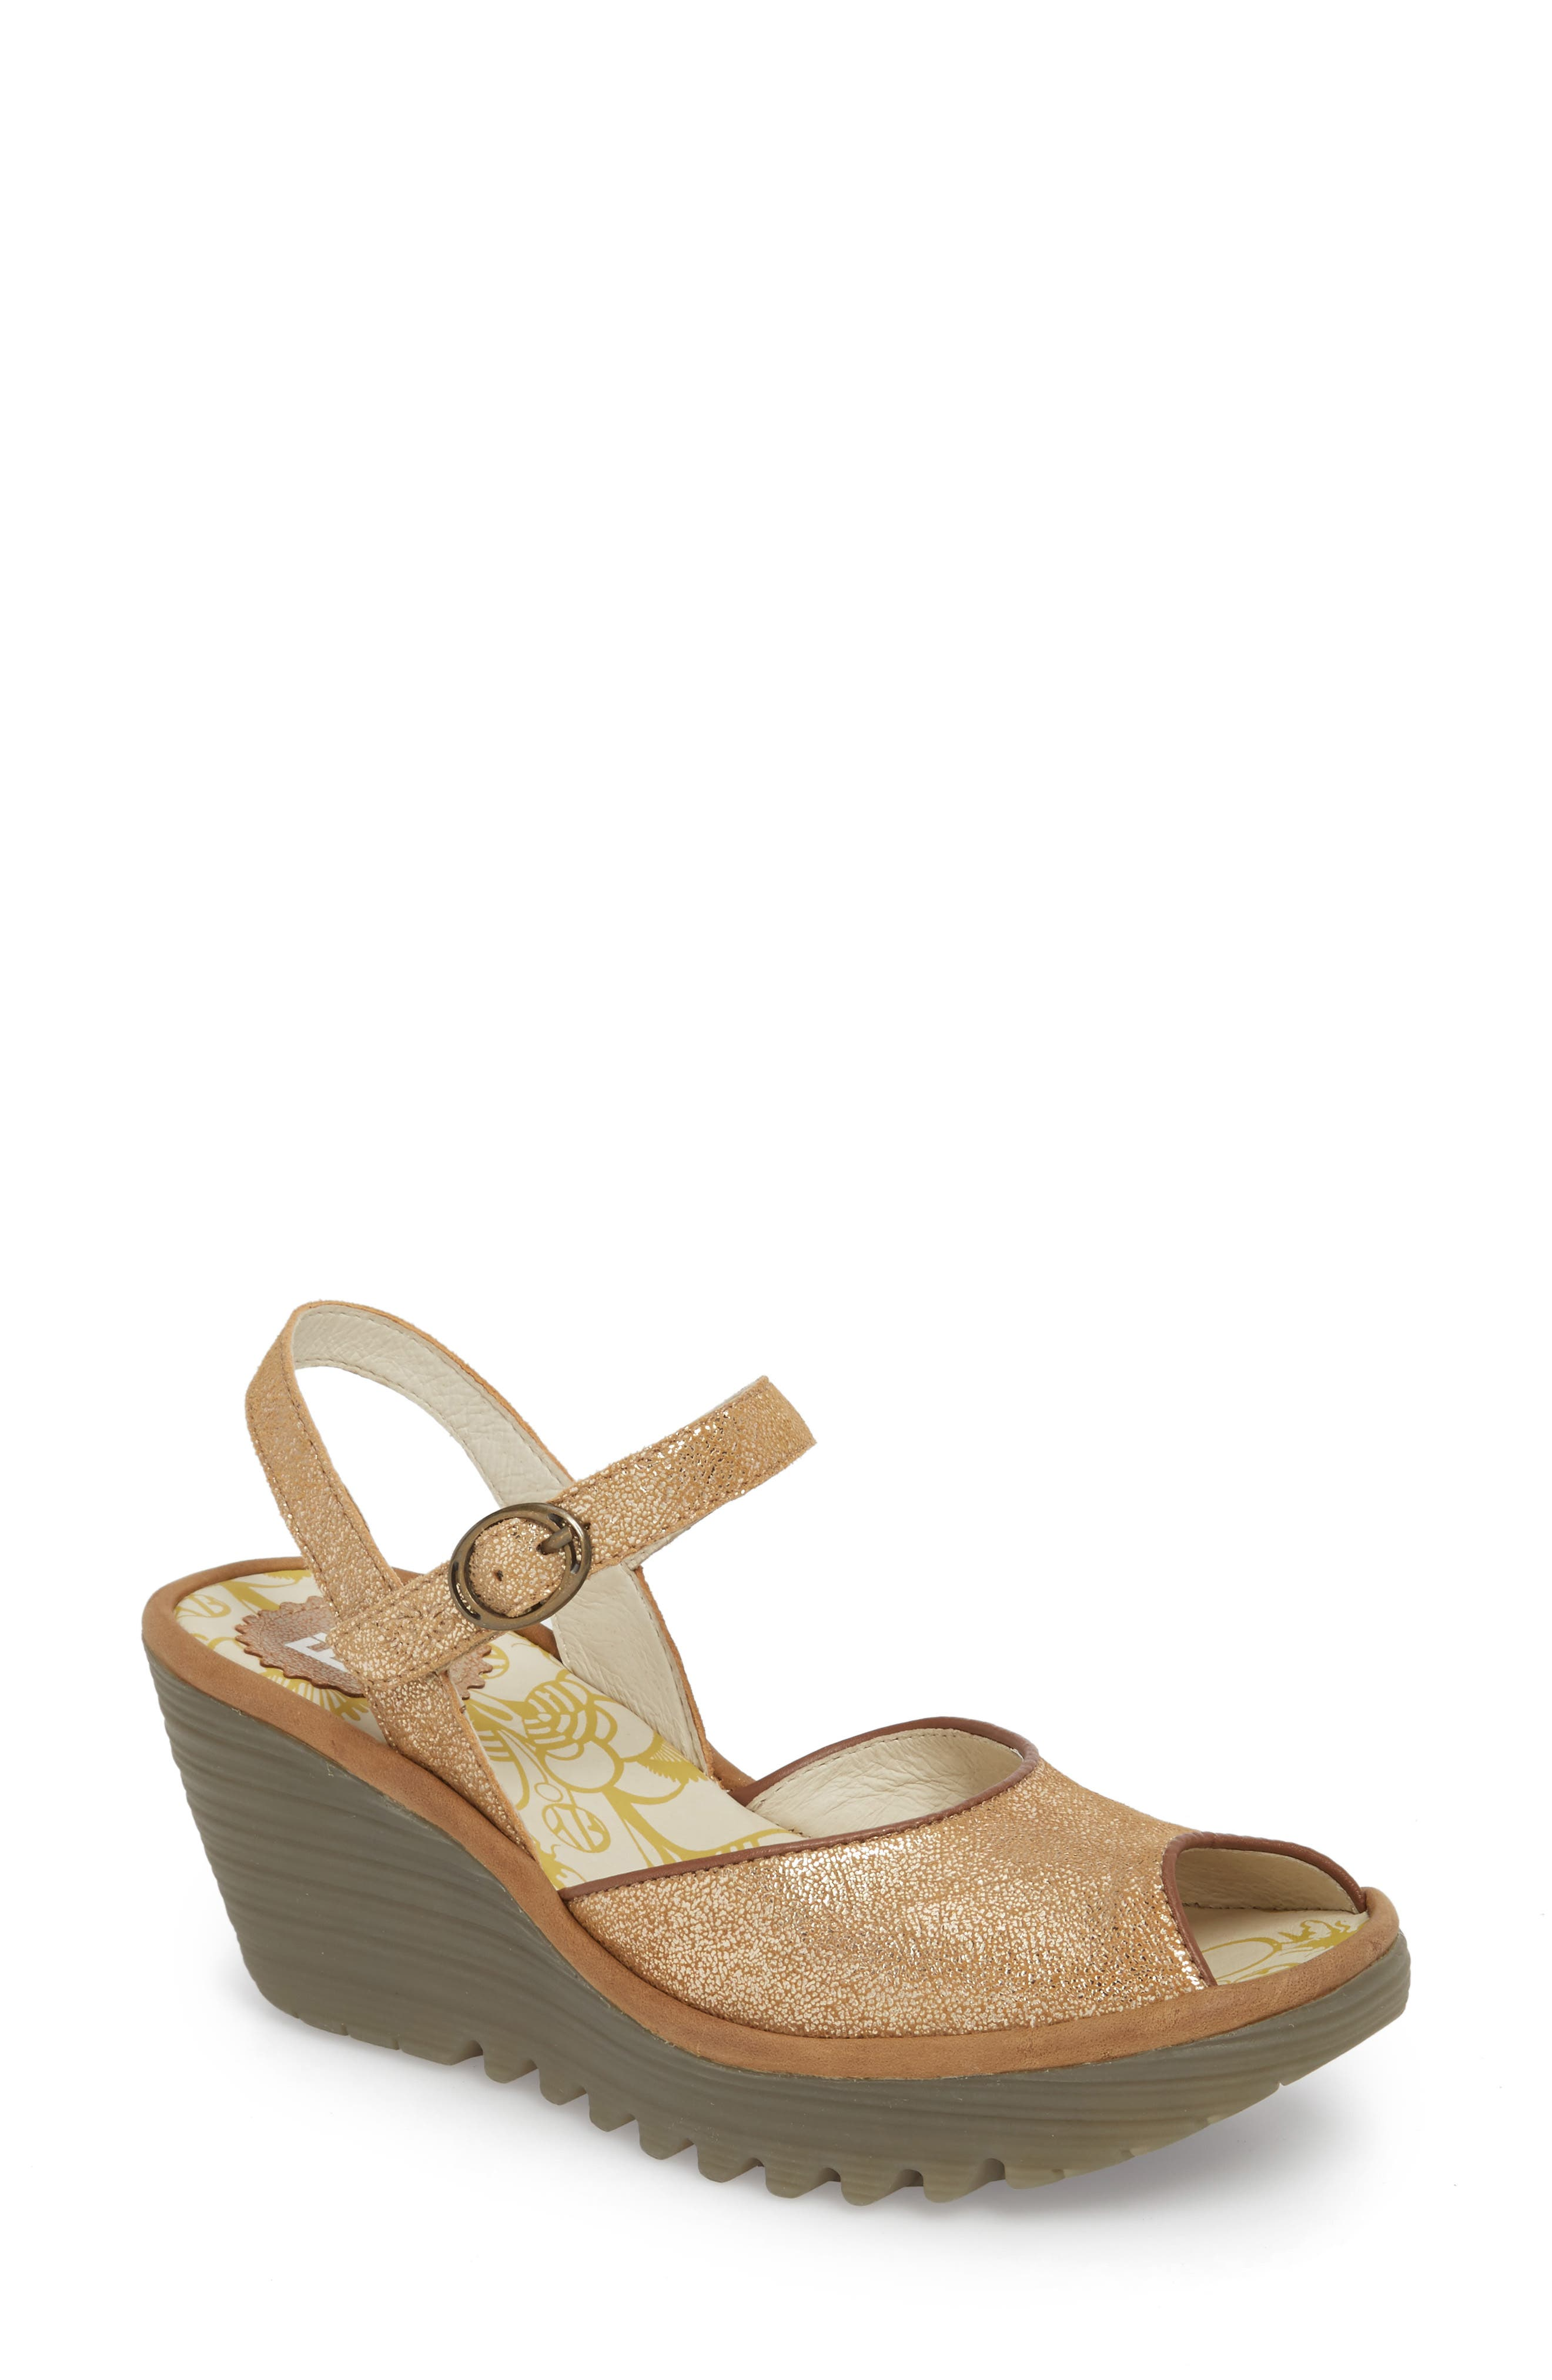 Fly London Yora Wedge Sandal, Brown